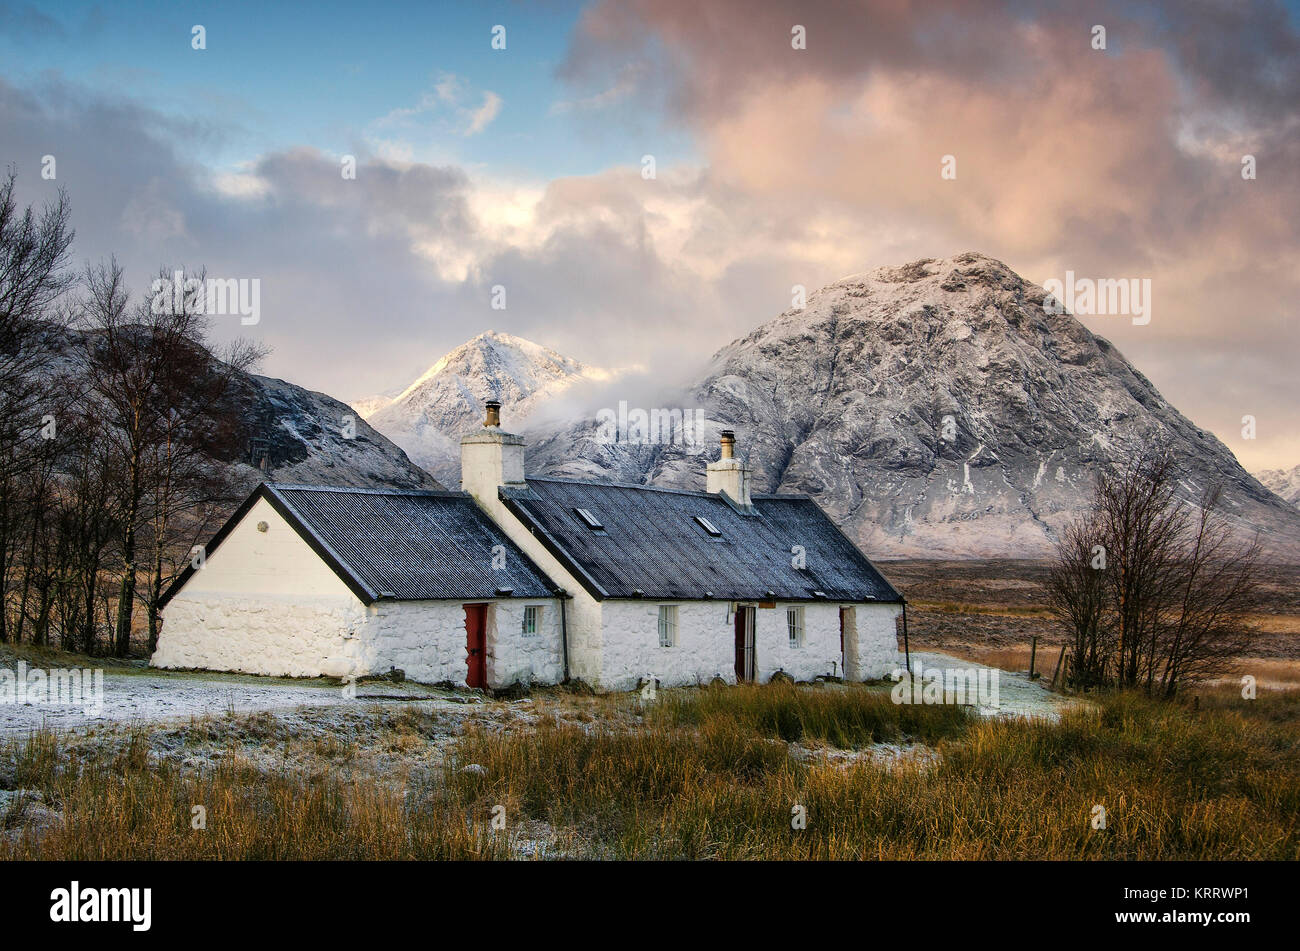 The famous Black rock cottage in Glencoe with the most recognised mountain in Scotland, the Buachaille Etive Mor - Stock Image